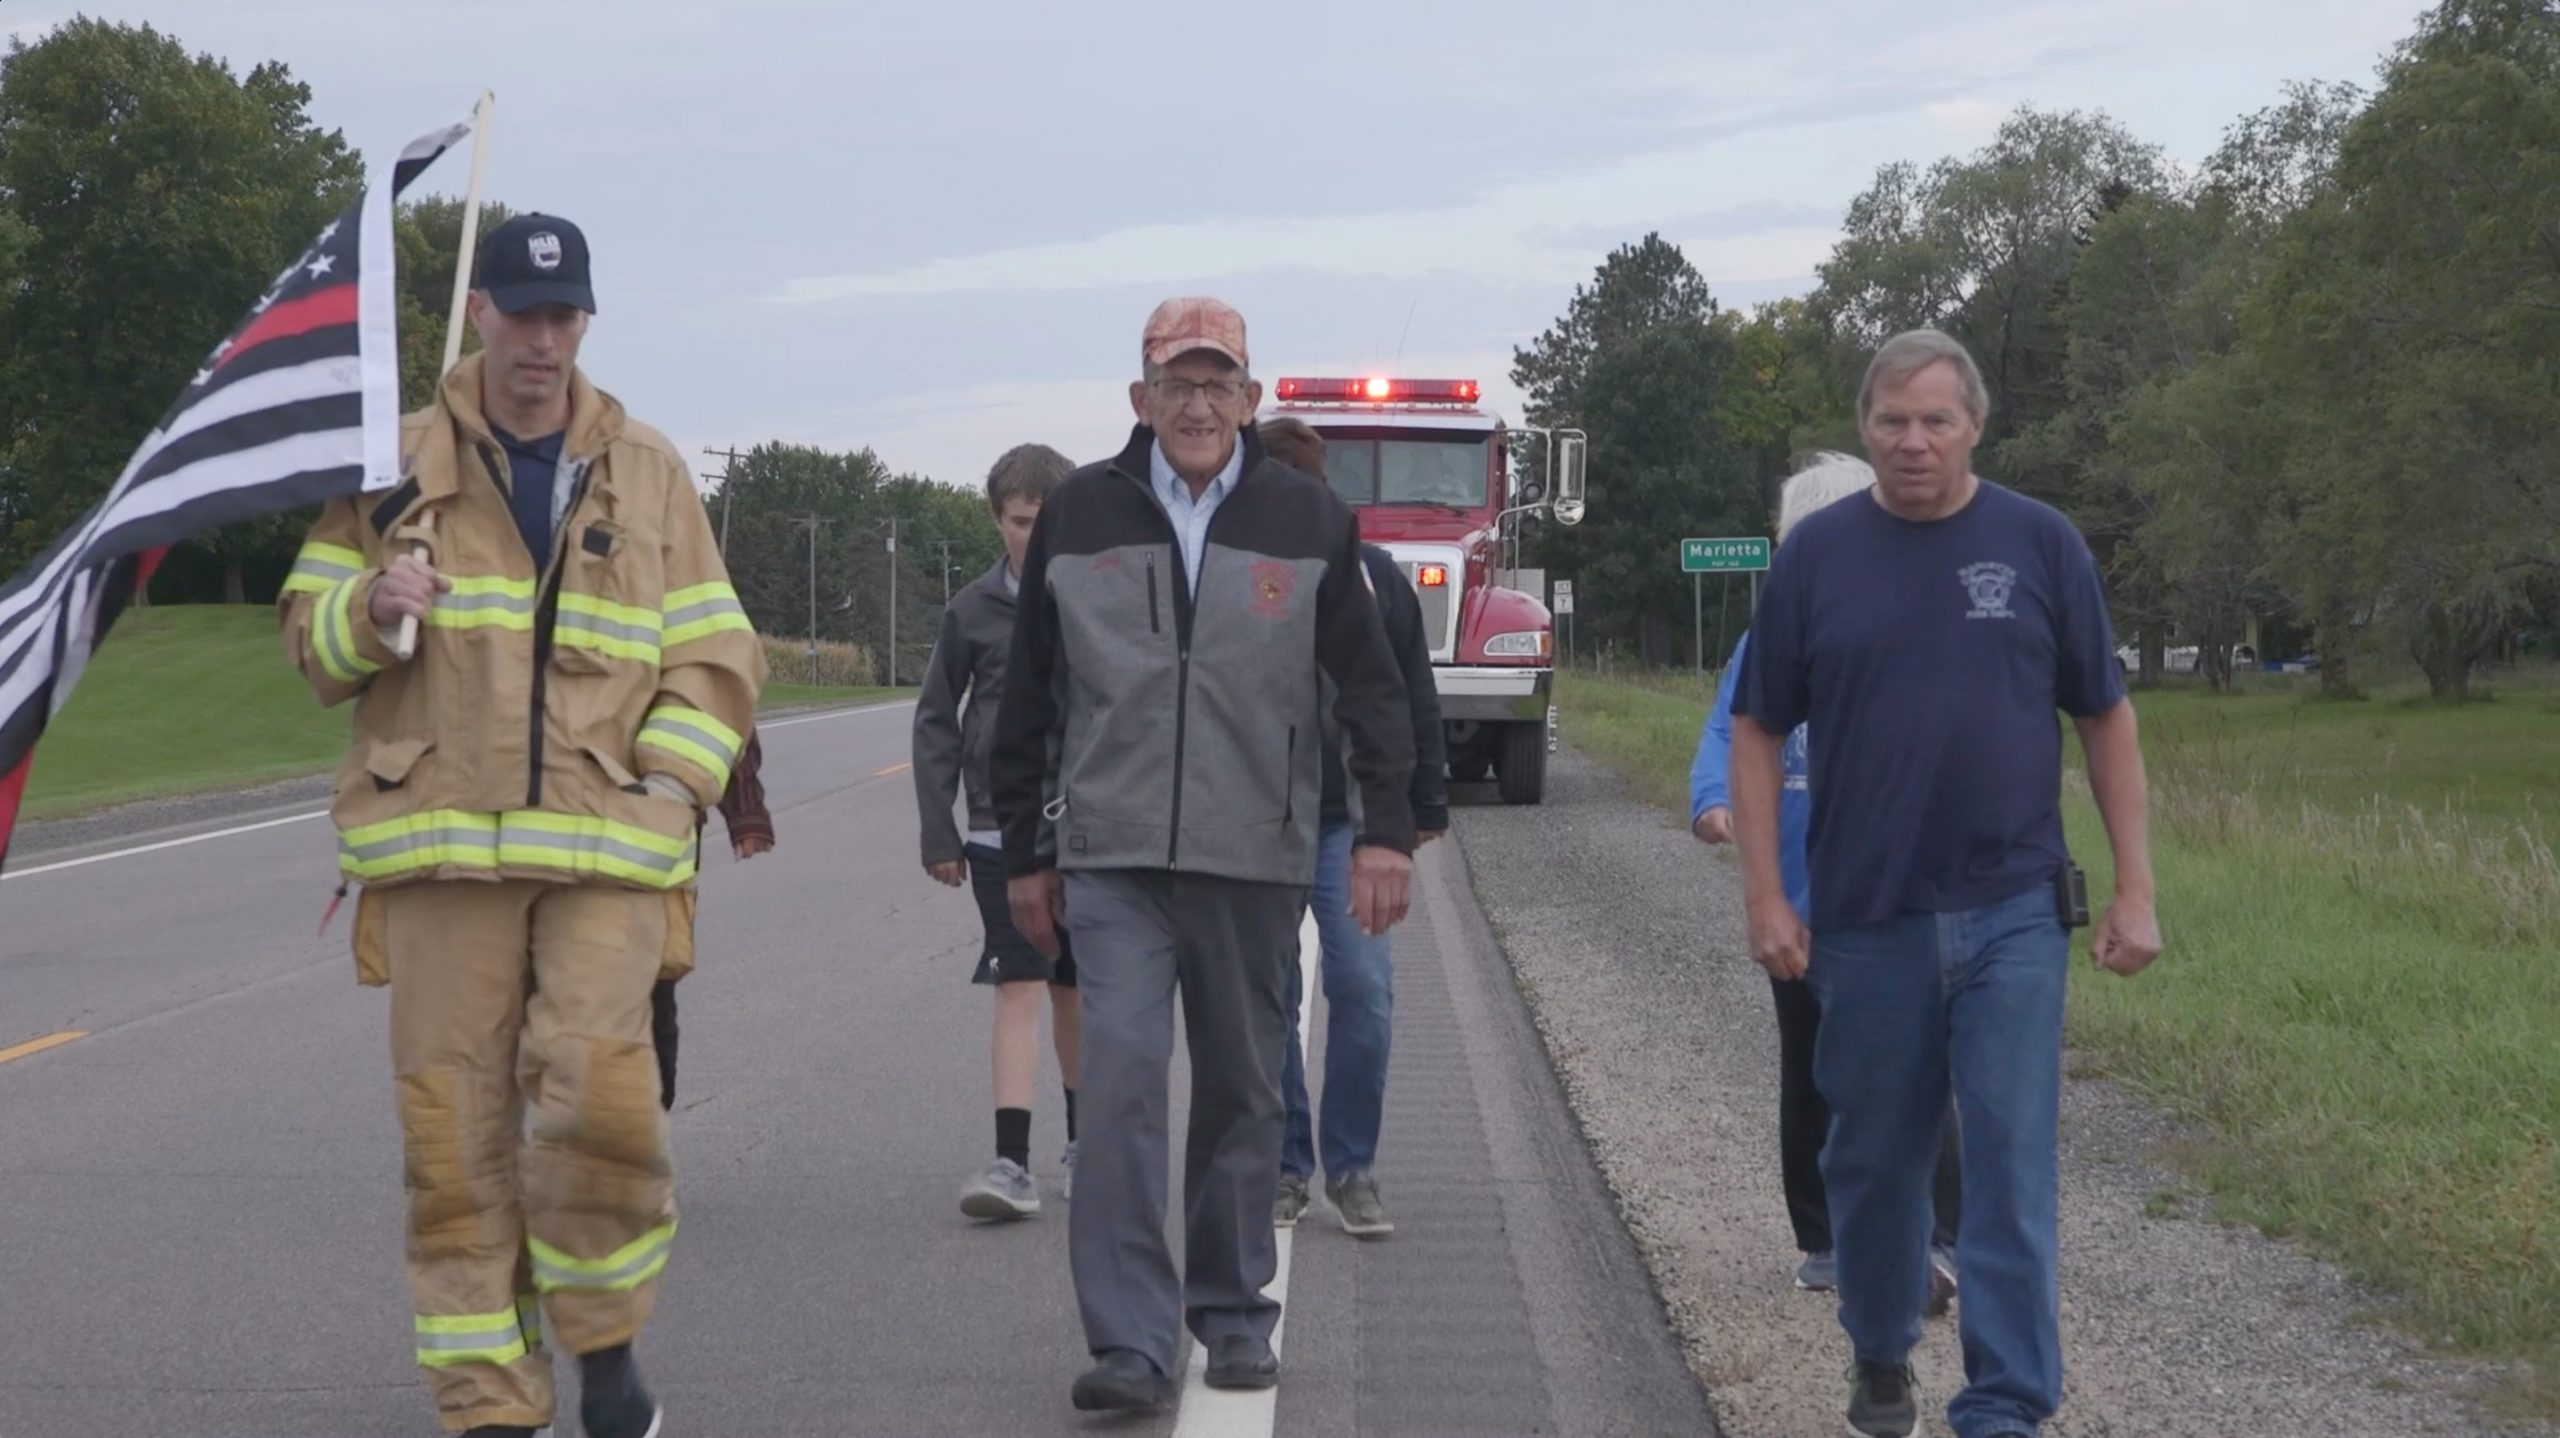 Doug Foote starting Miles for MnFIRE